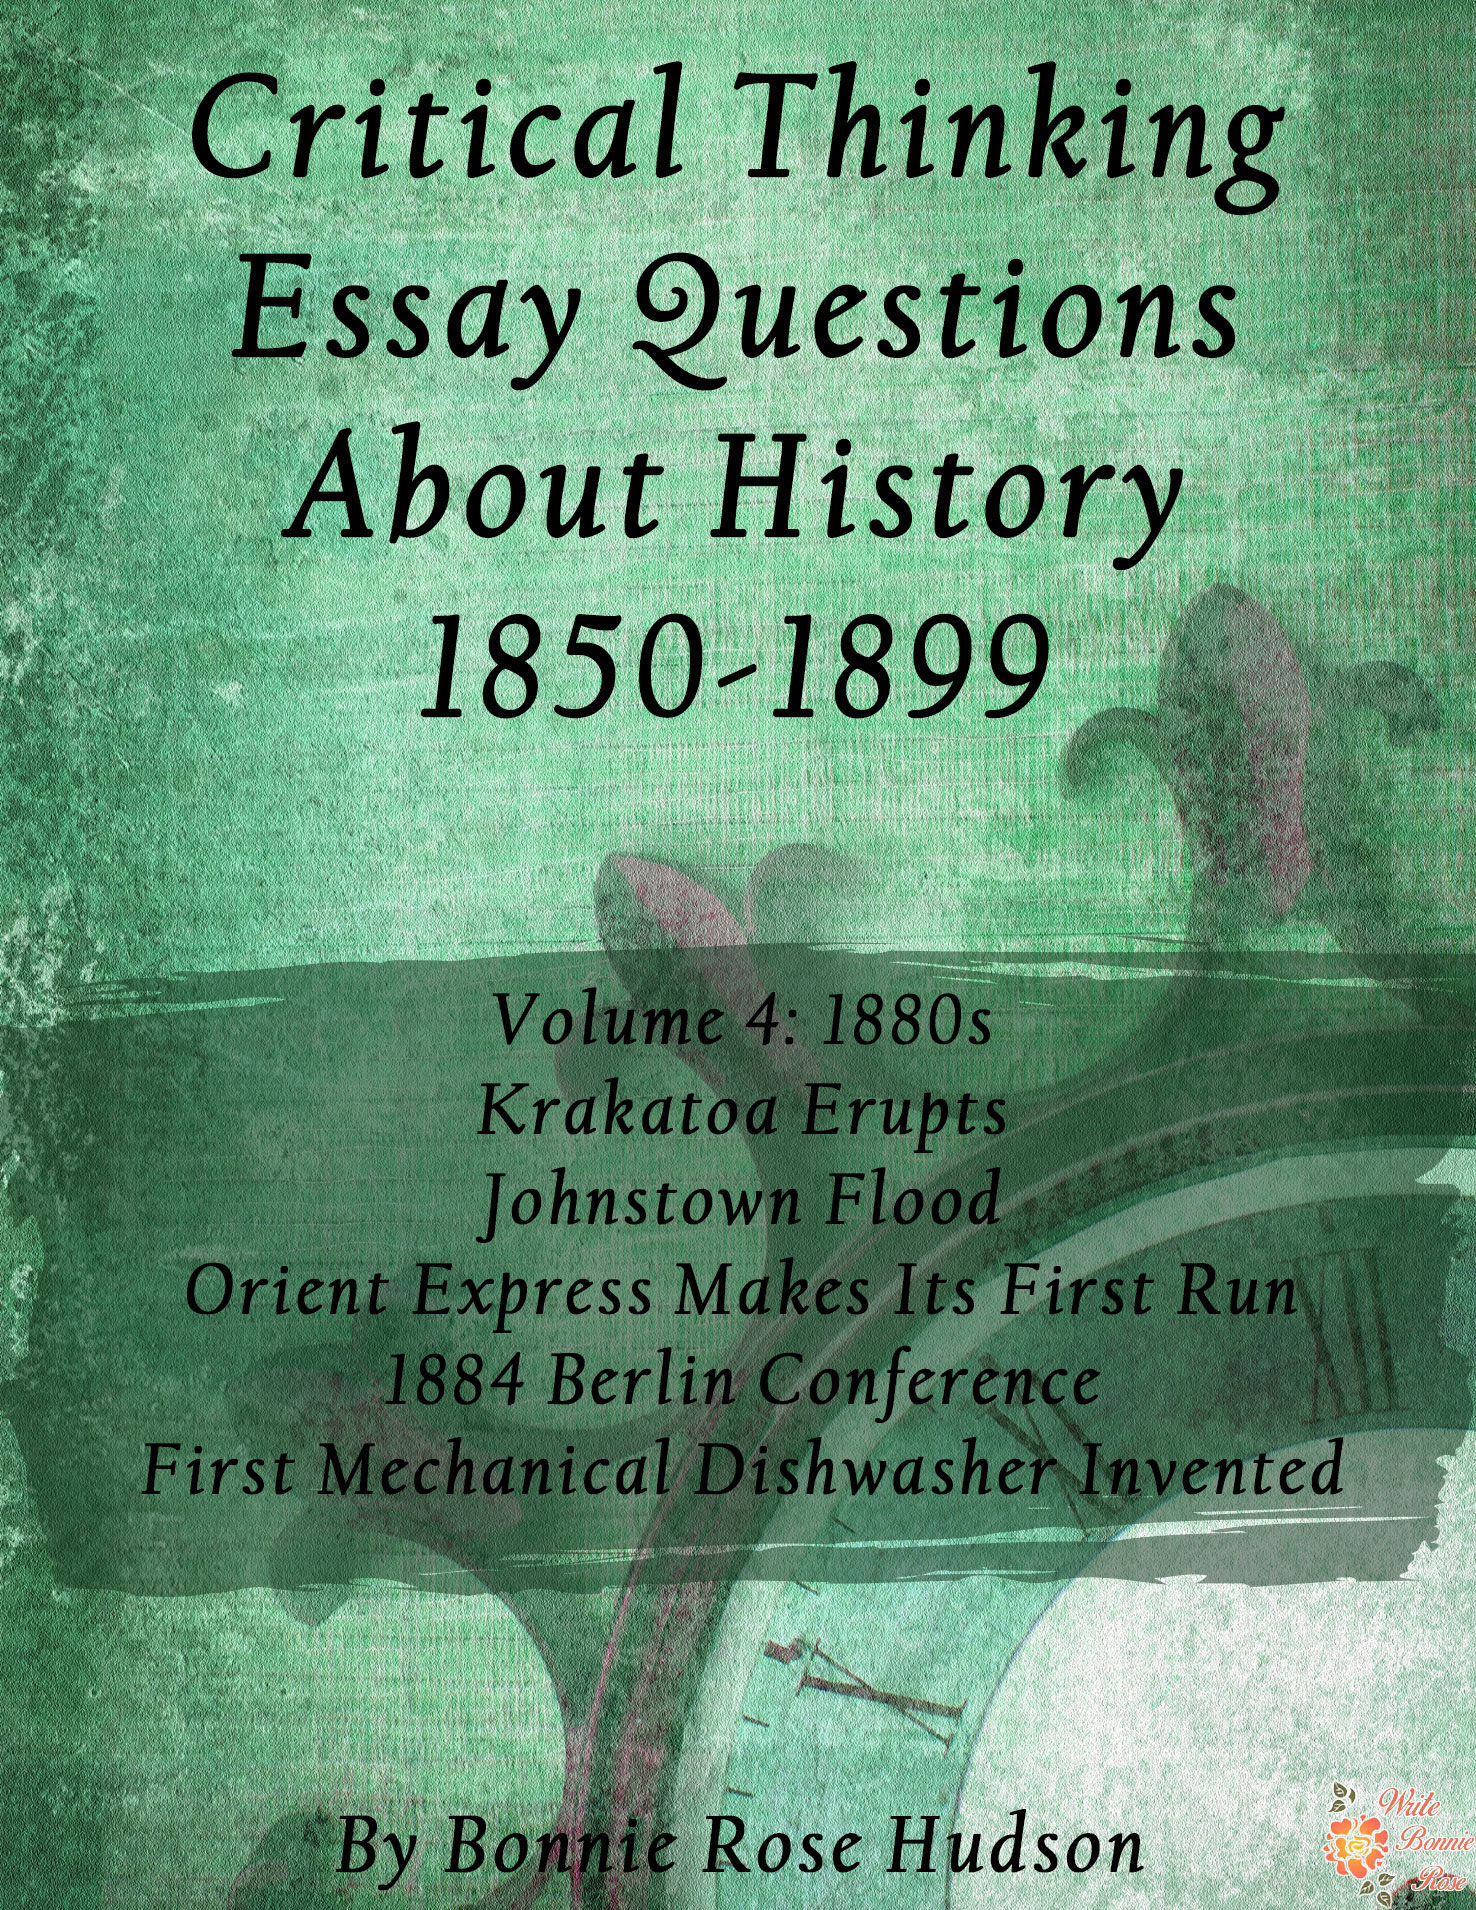 FREE Critical Thinking Essay Questions About History 1850-1899, Volume 4